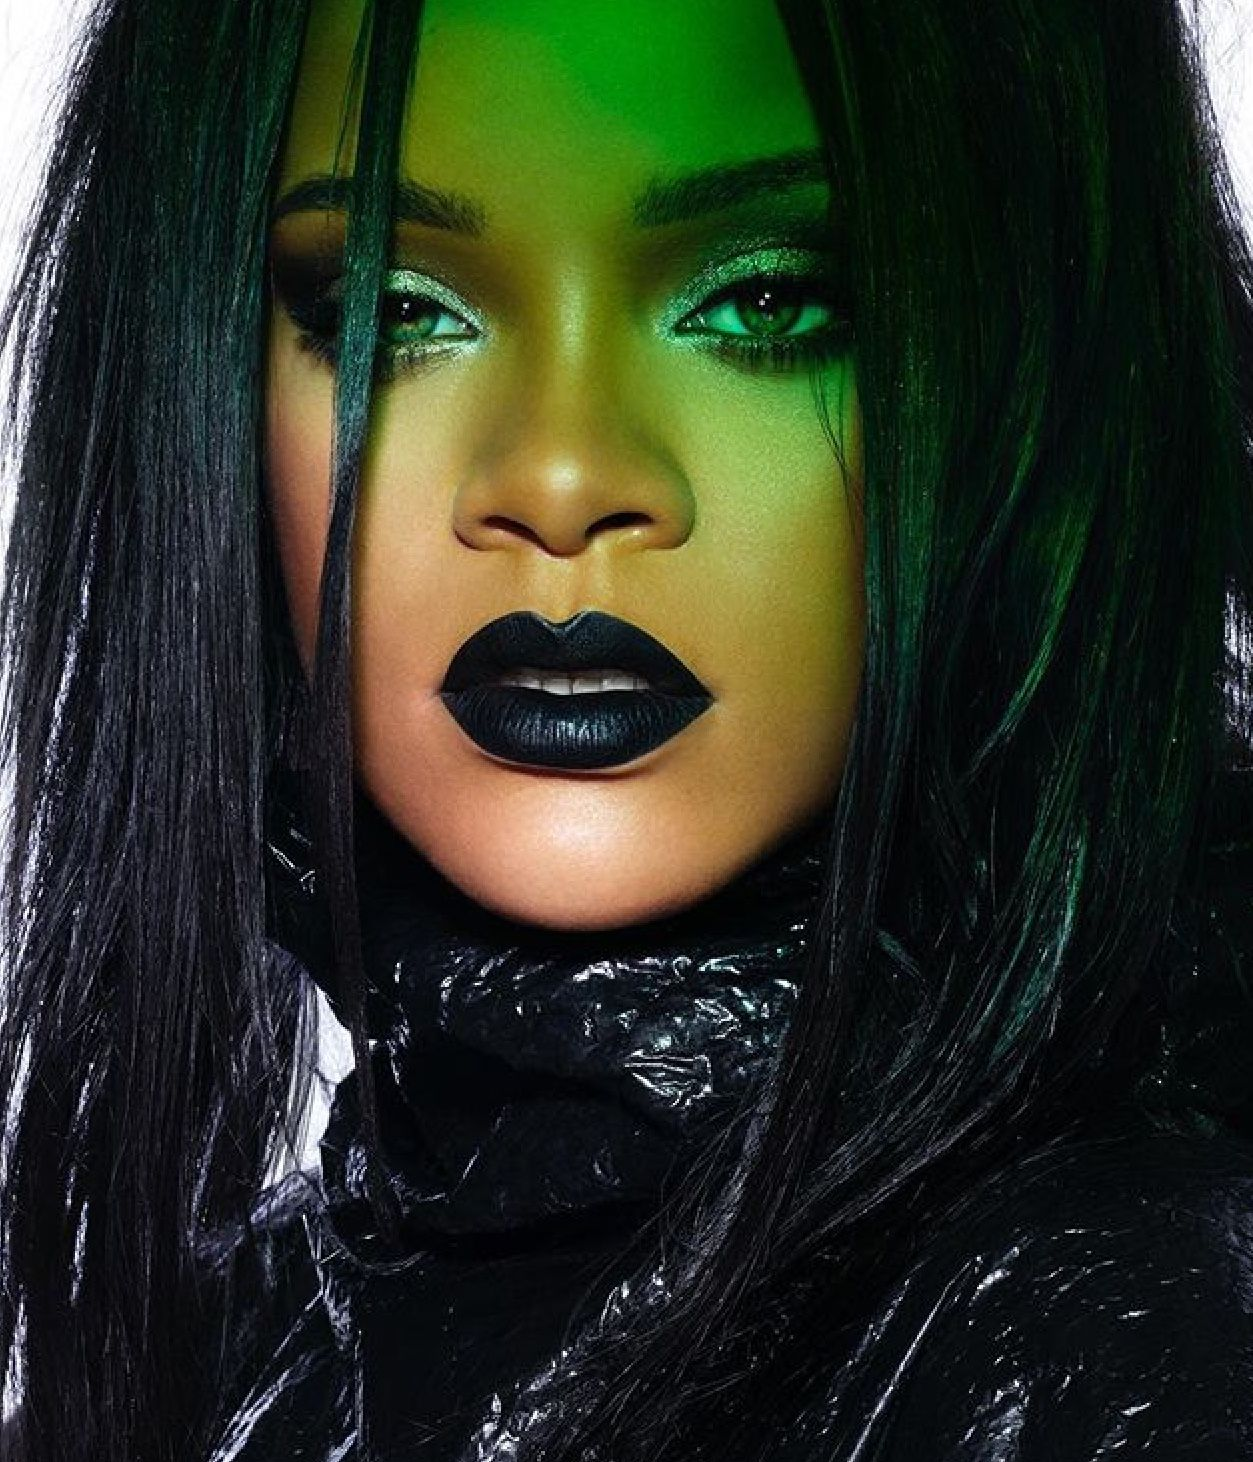 Pin by Ericka on people  Pinterest  Rihanna Rihanna fenty and